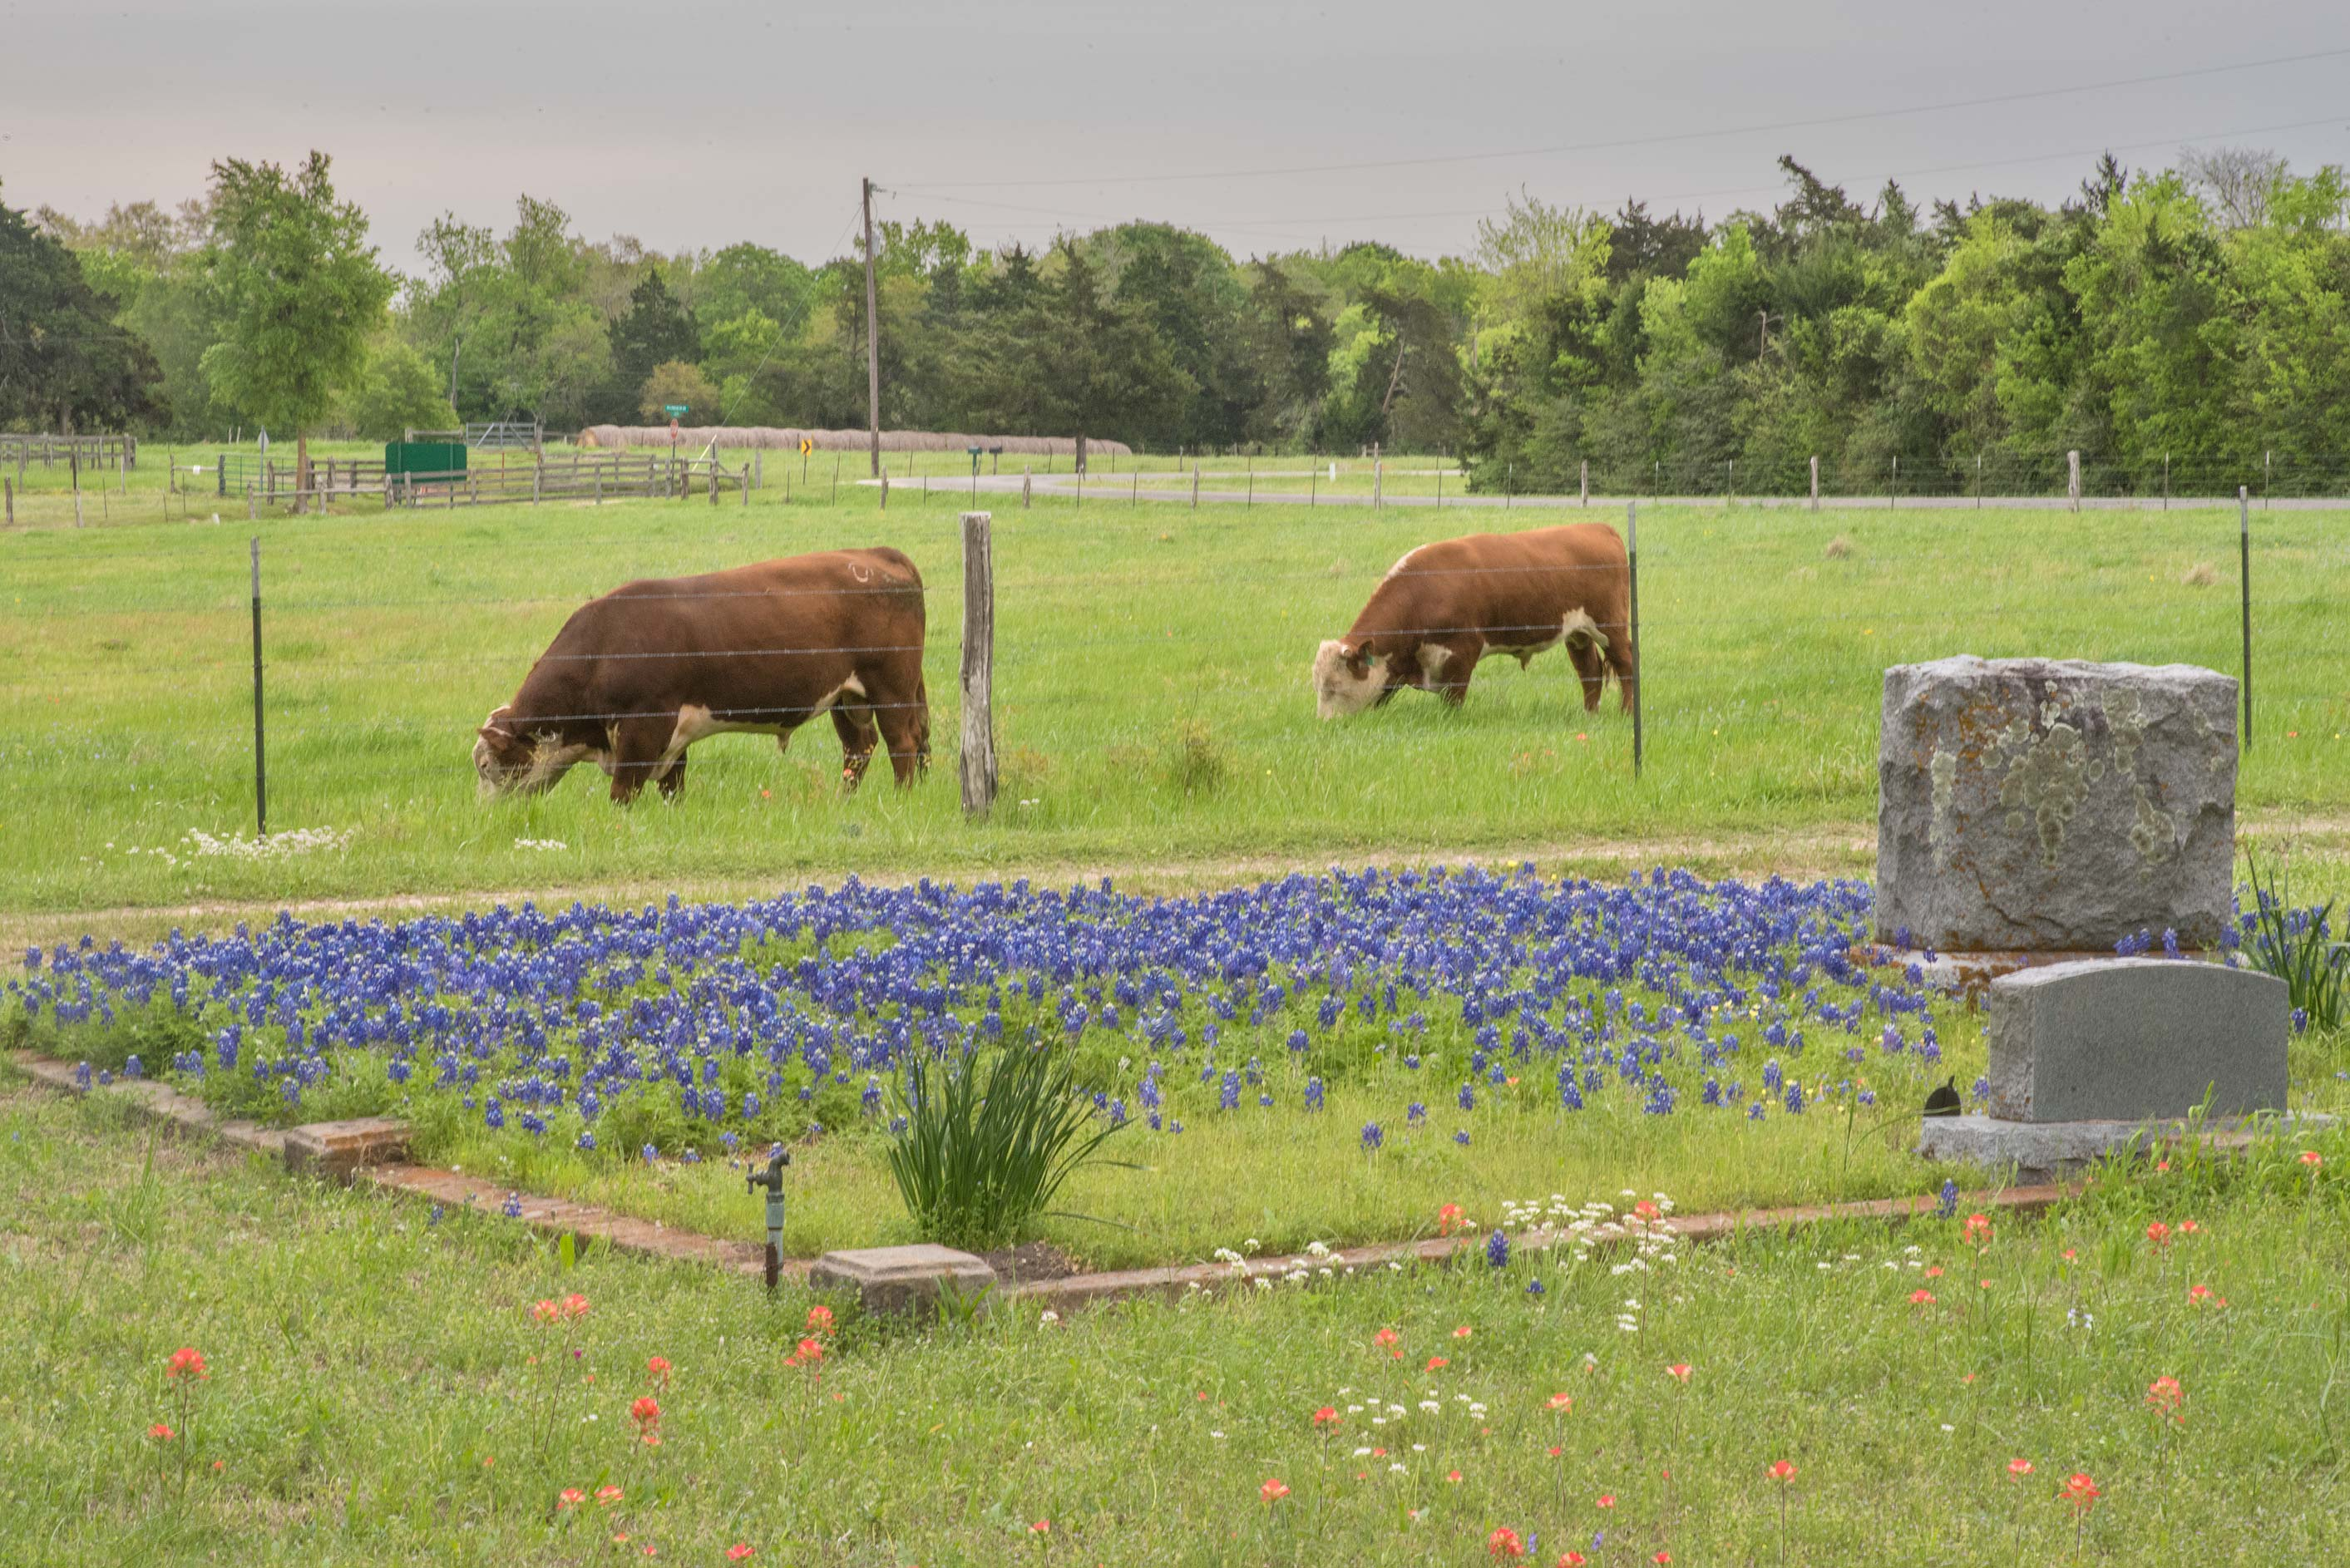 Bluebonnets and cows in Historic Independence Cemetery near Independence. Texas